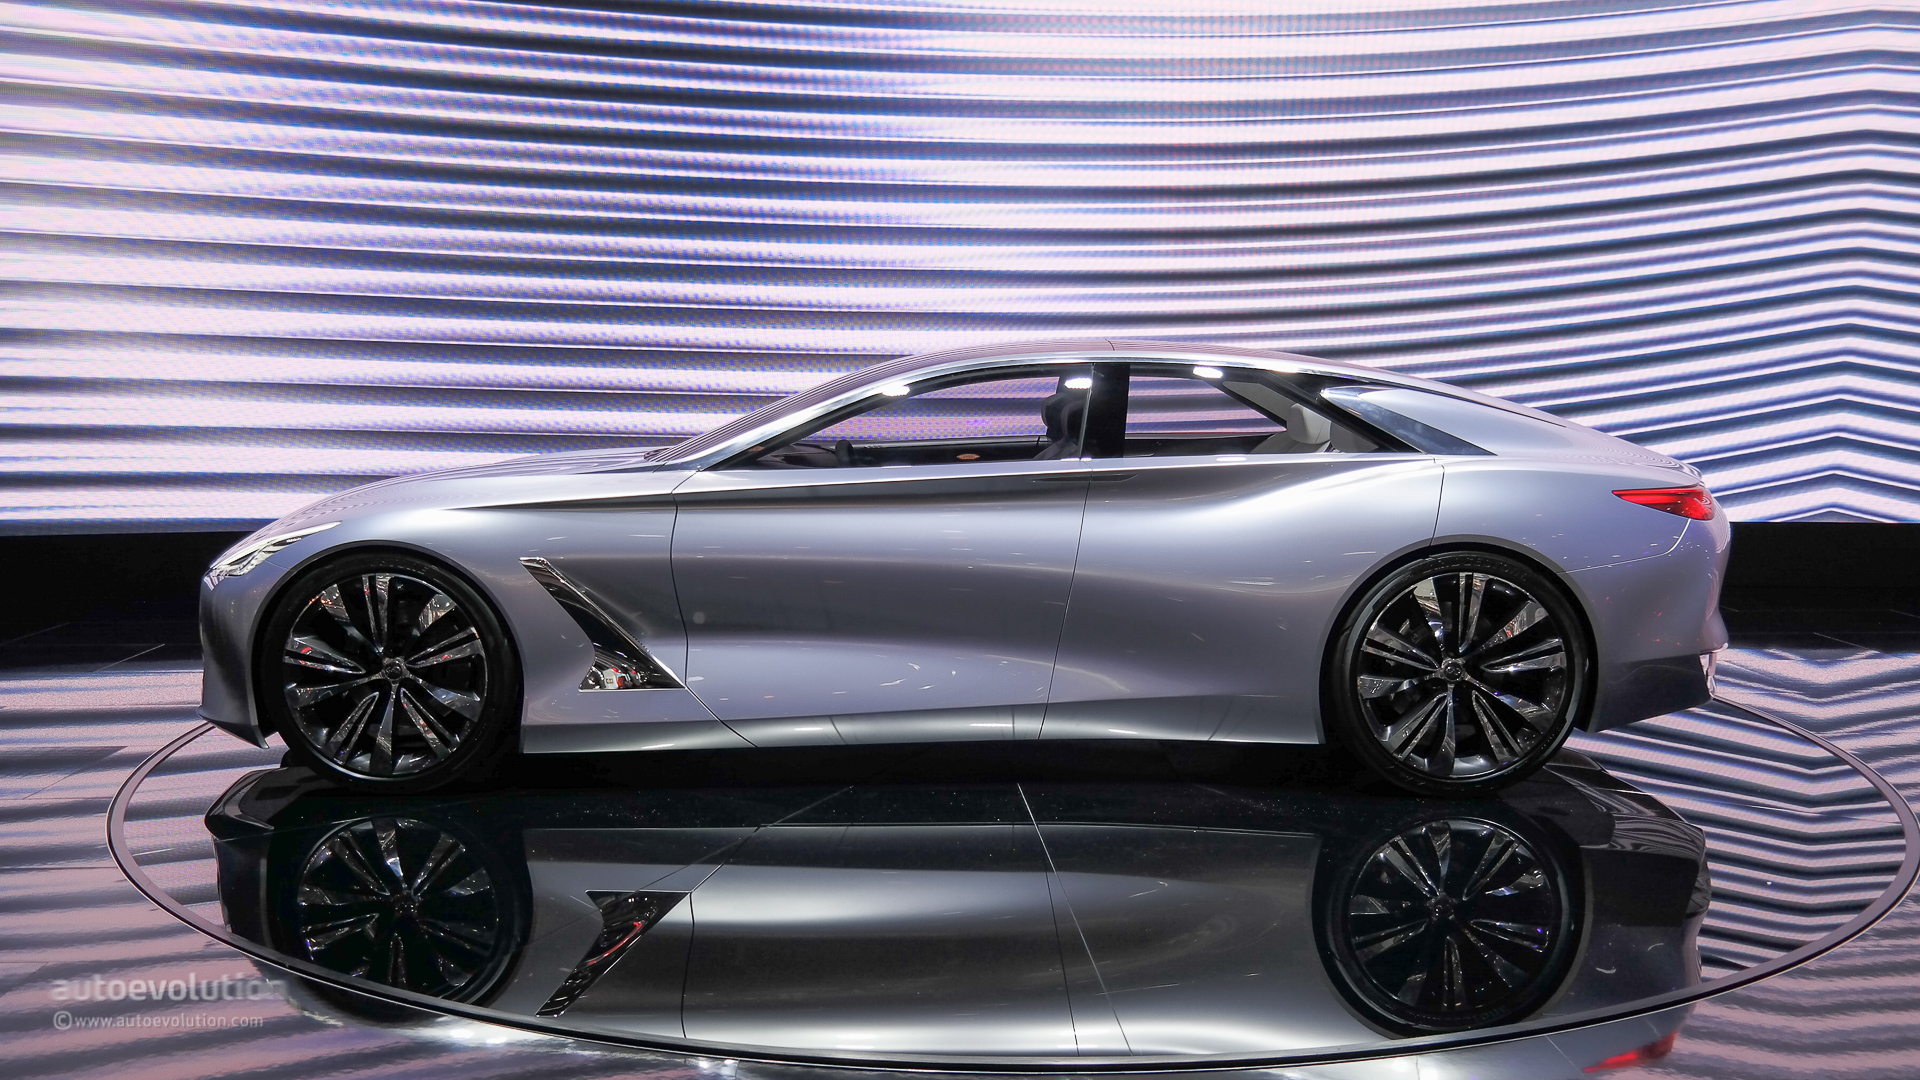 Stylish Infiniti Q80 Four Door Coupe Demands Attention In Dynamic Video Debut Autoevolution